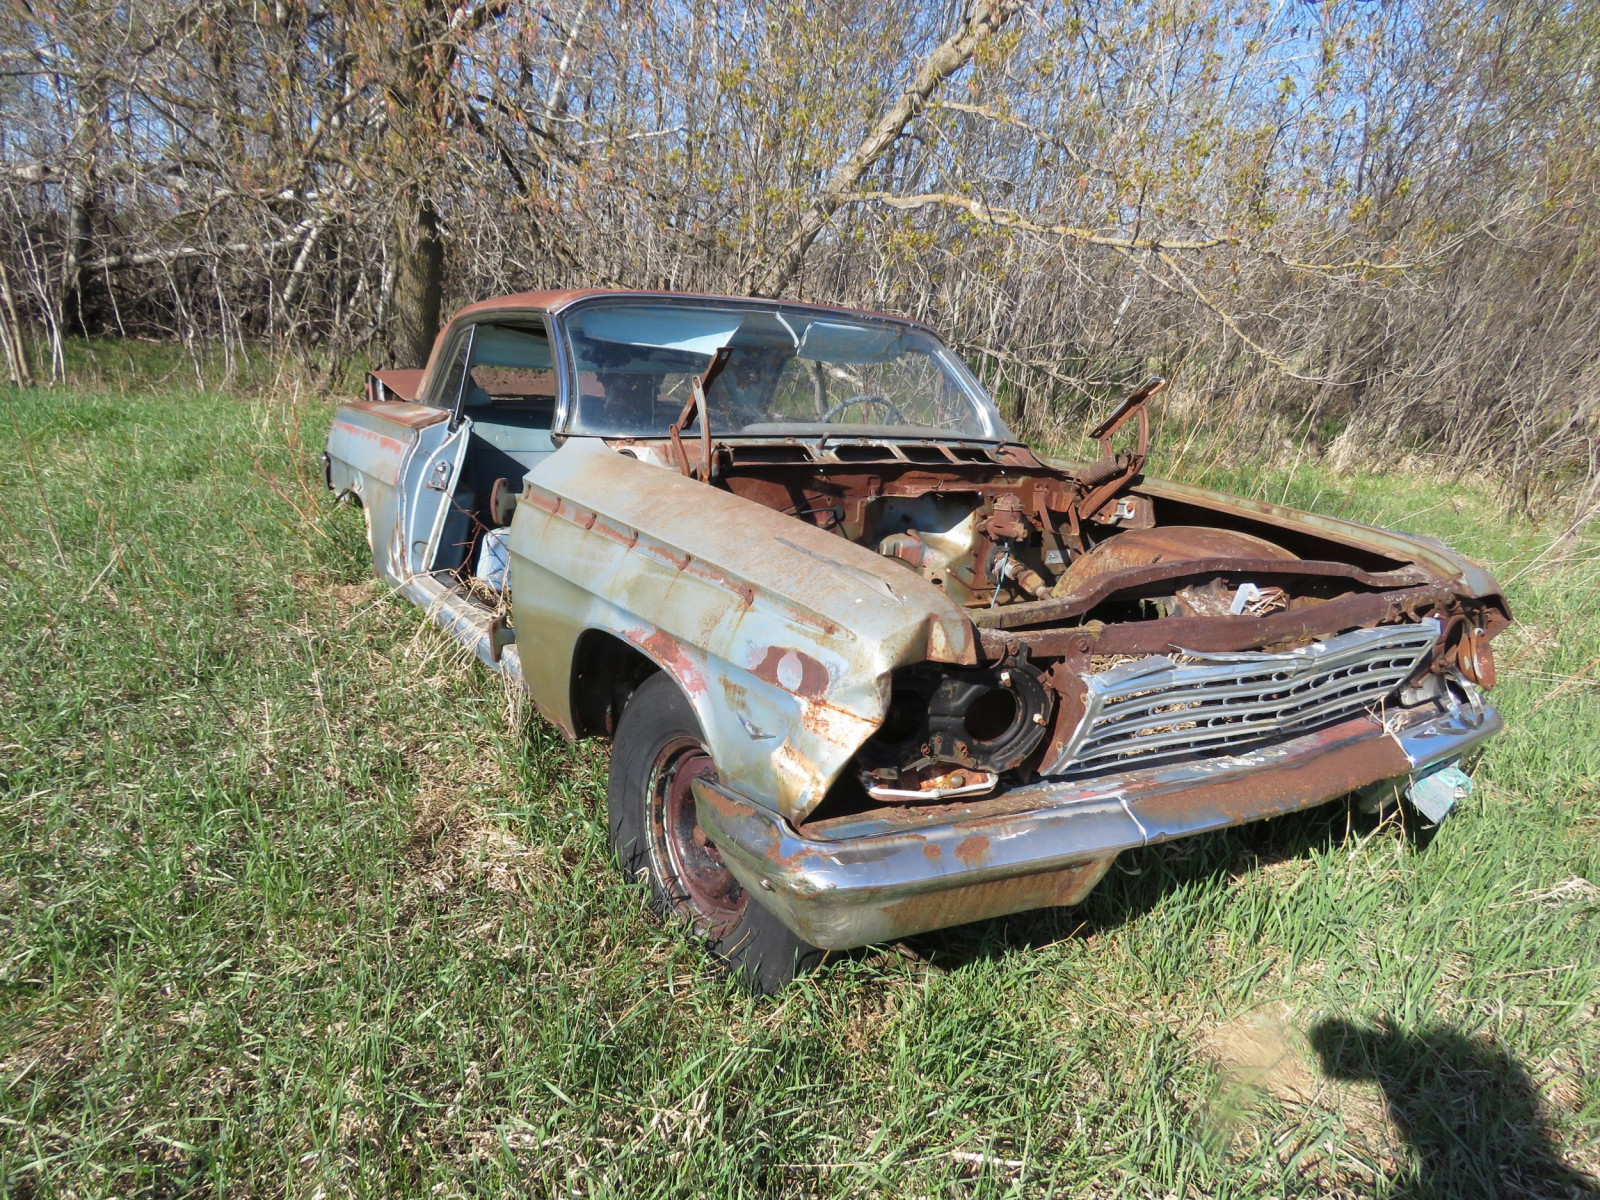 1962 Chevrolet 2dr HT rough Shell only - Image 2